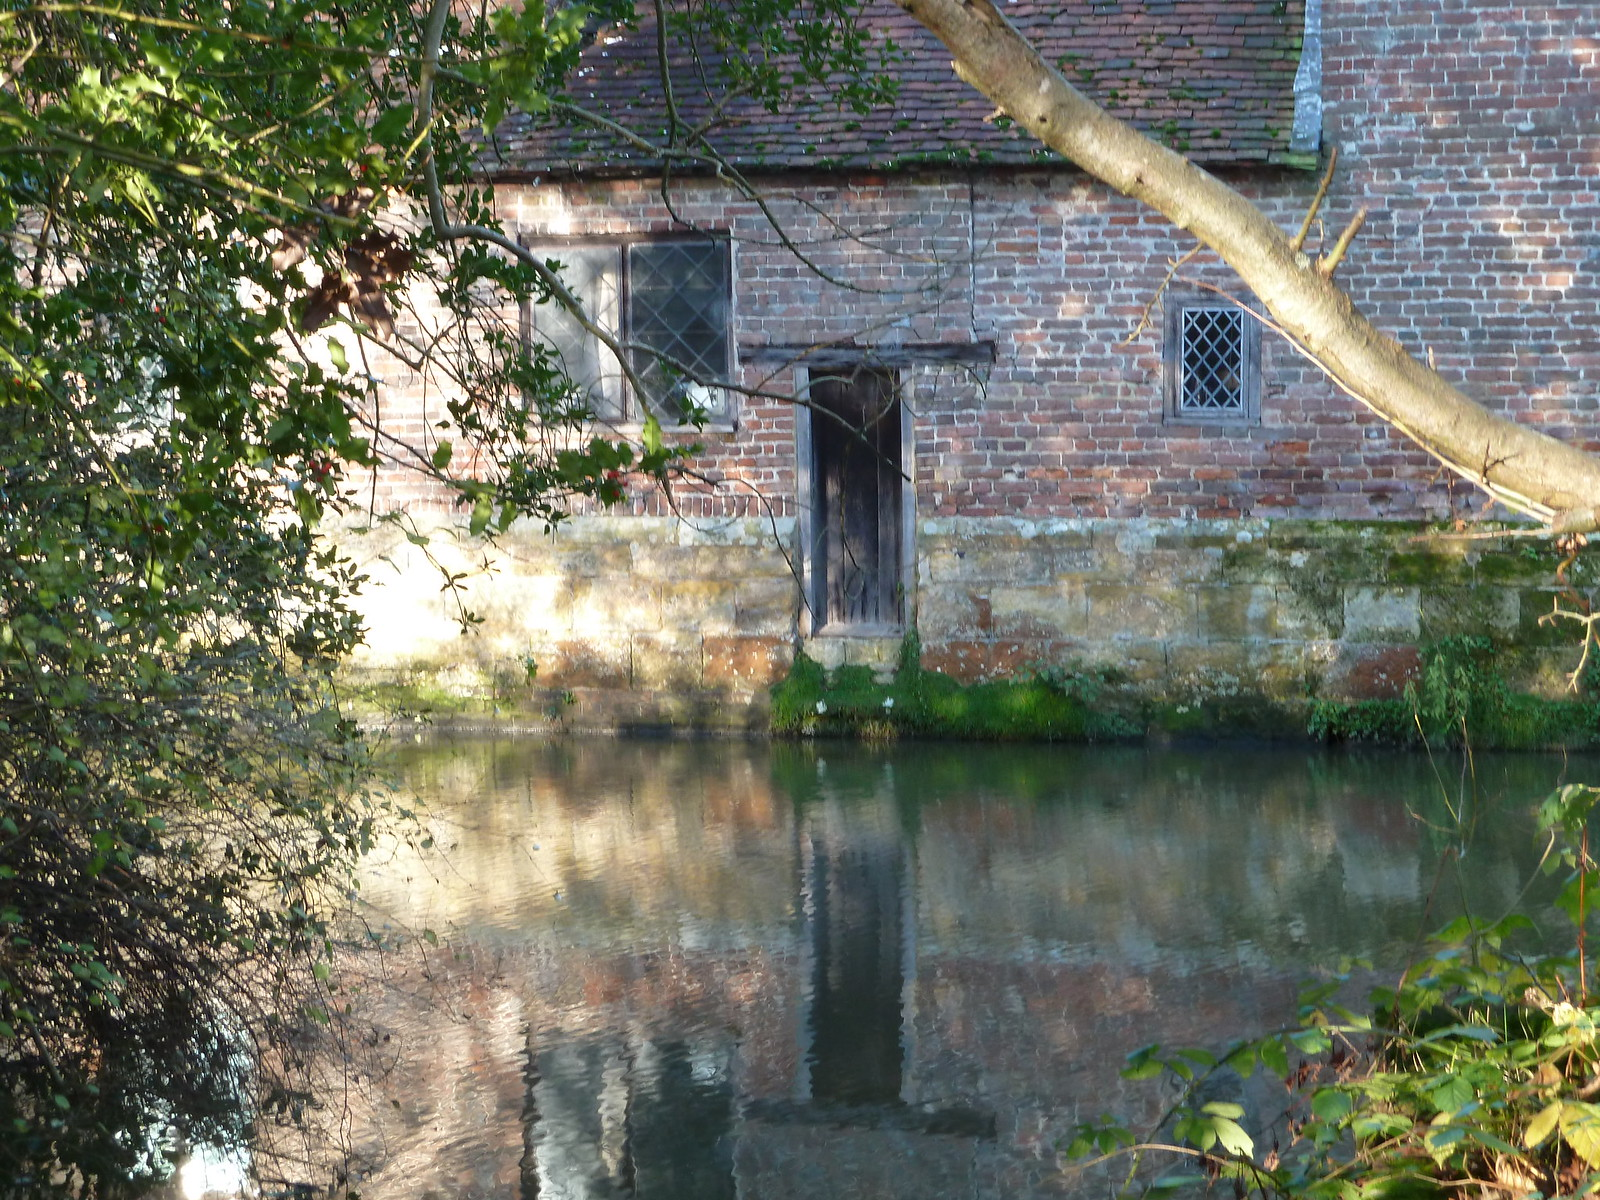 'A Moated Manor' (Eridge Circular) Jacobean manor surrounded by medieval moat.